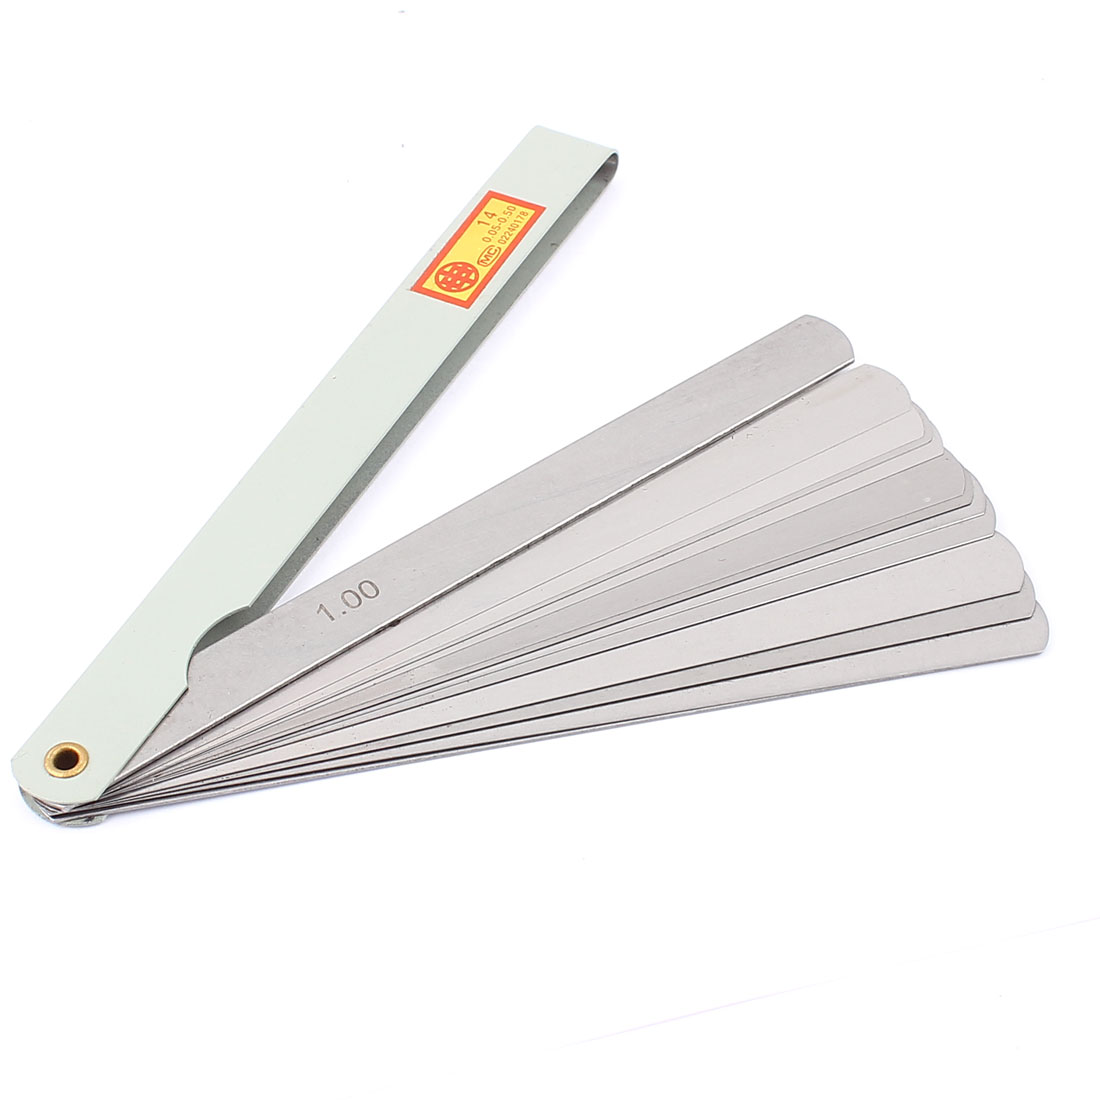 0.05mm to 1mm Thickness Gap Metric Filler Feeler Gauge Measure Tool